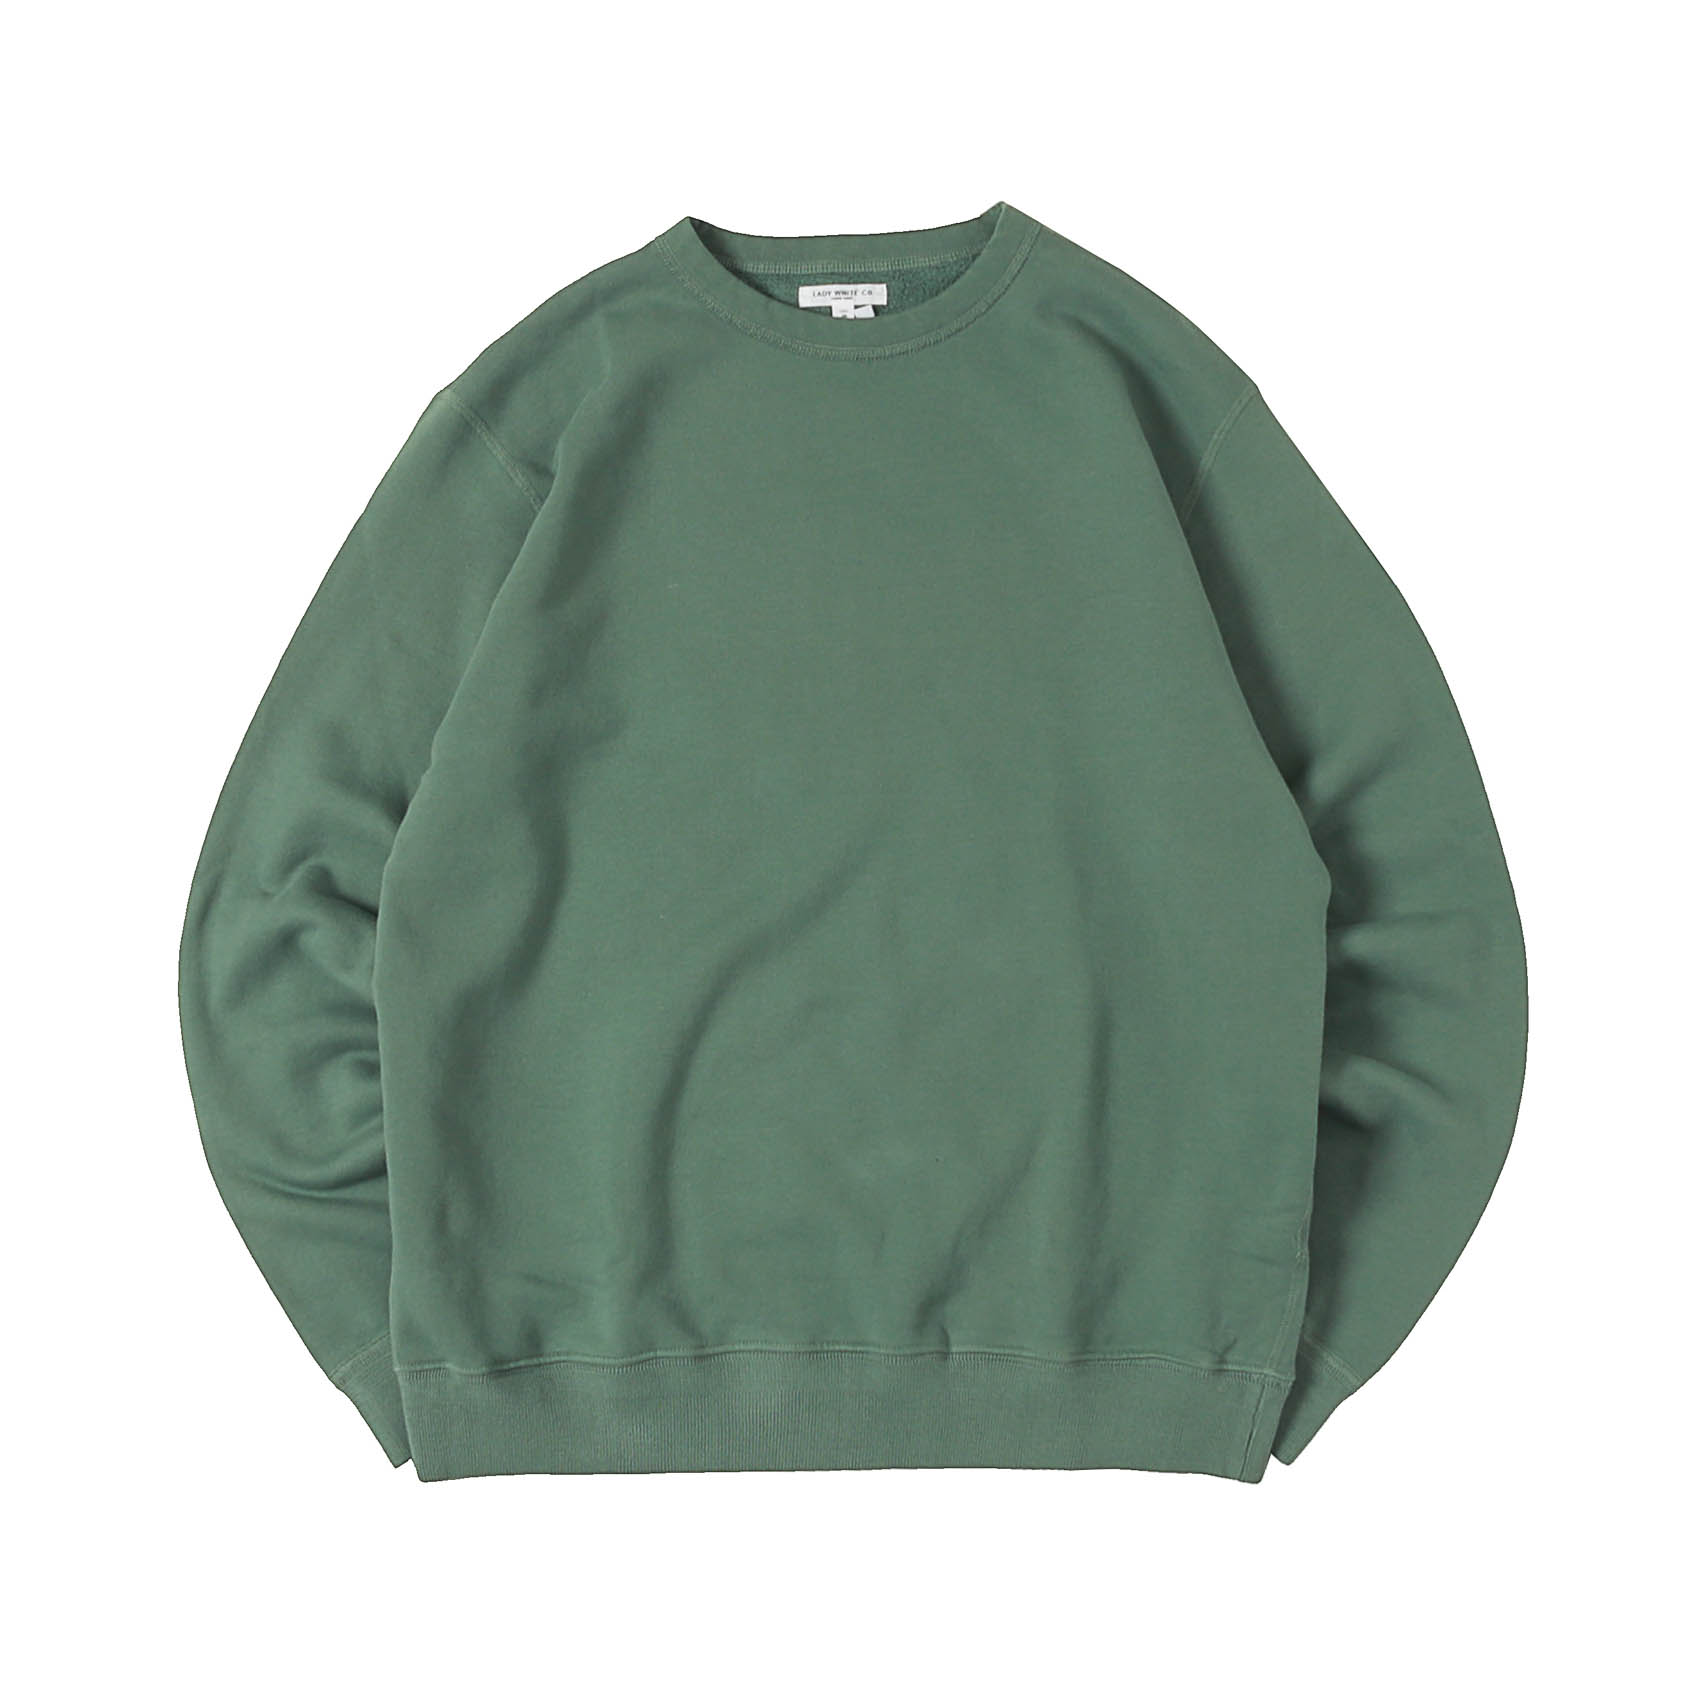 44 FLEECE - STONE GREEN